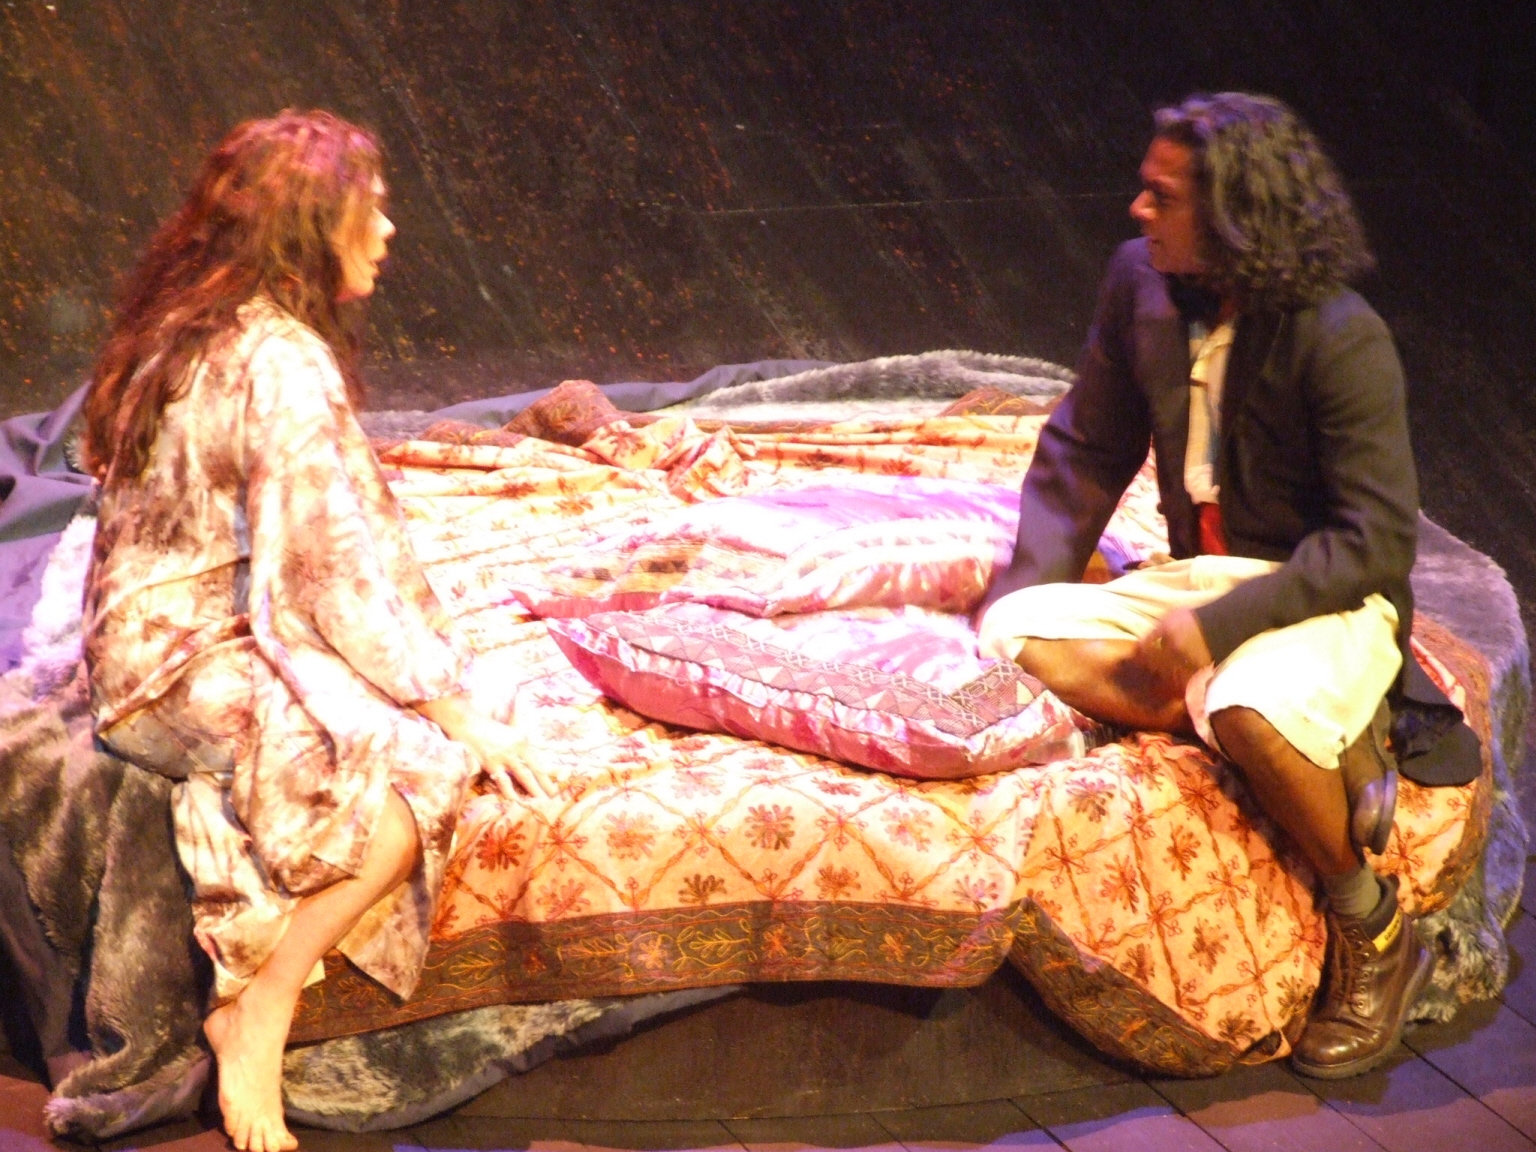 Hamlet and Gertrude in the 2006 production of Hamlet.